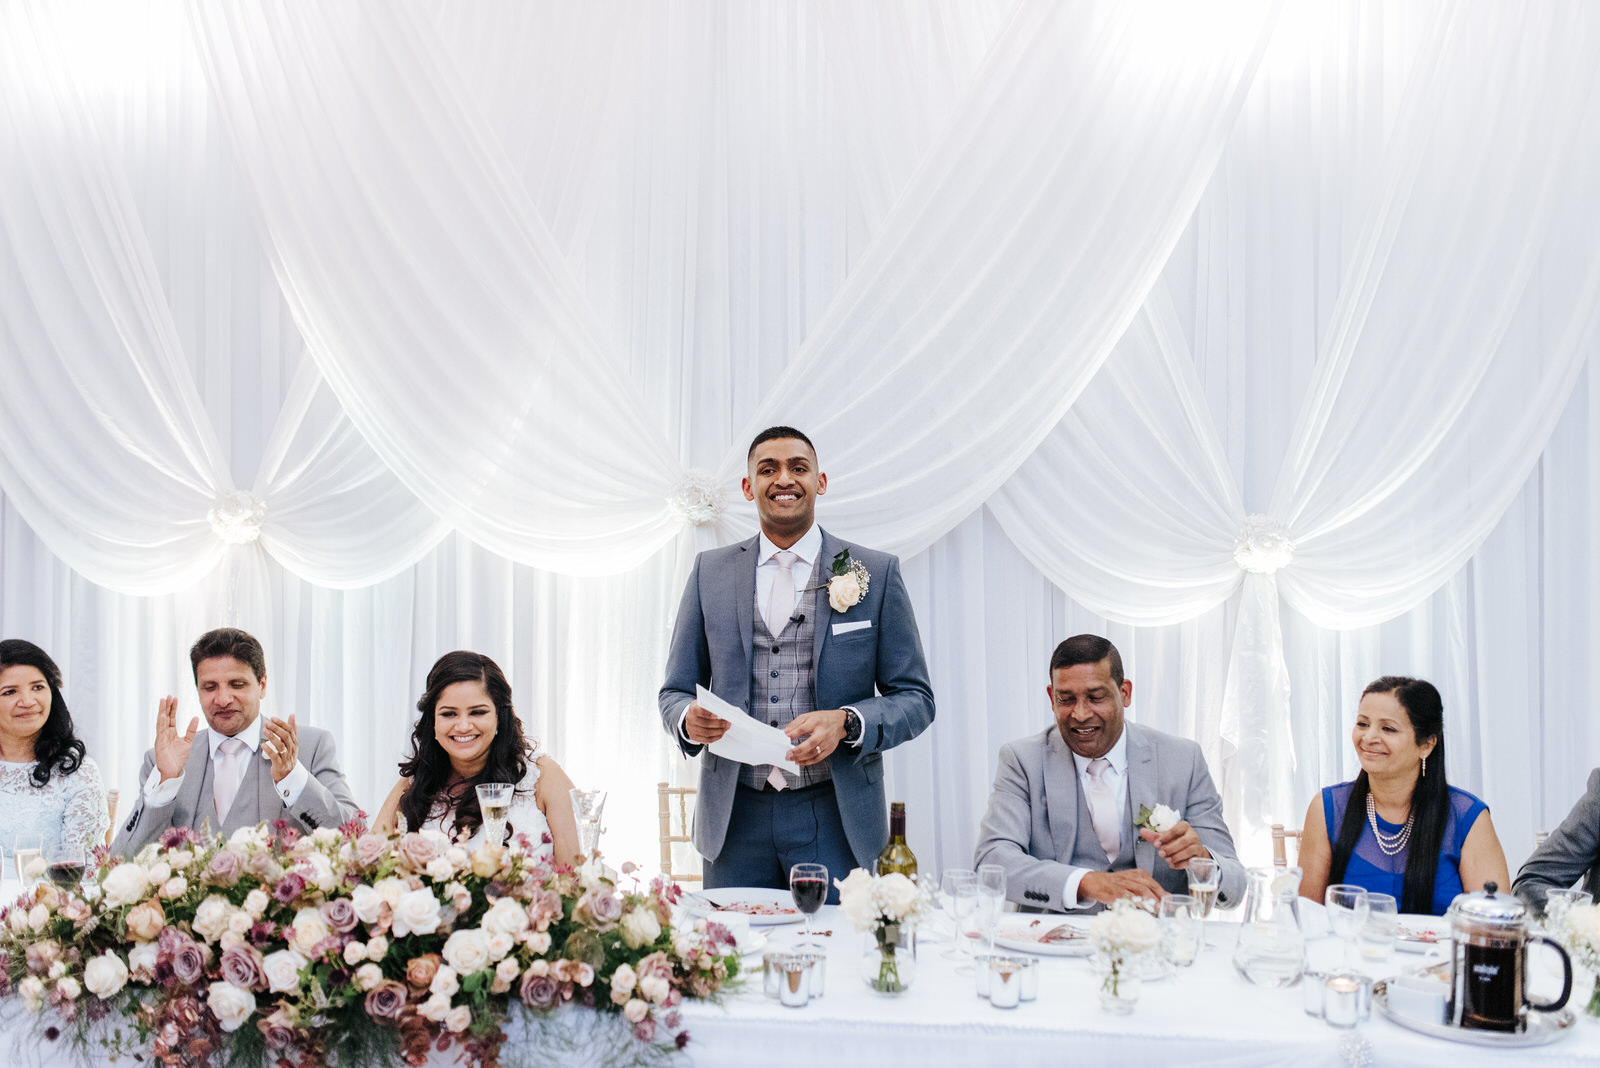 Groom stands up and begins his speech